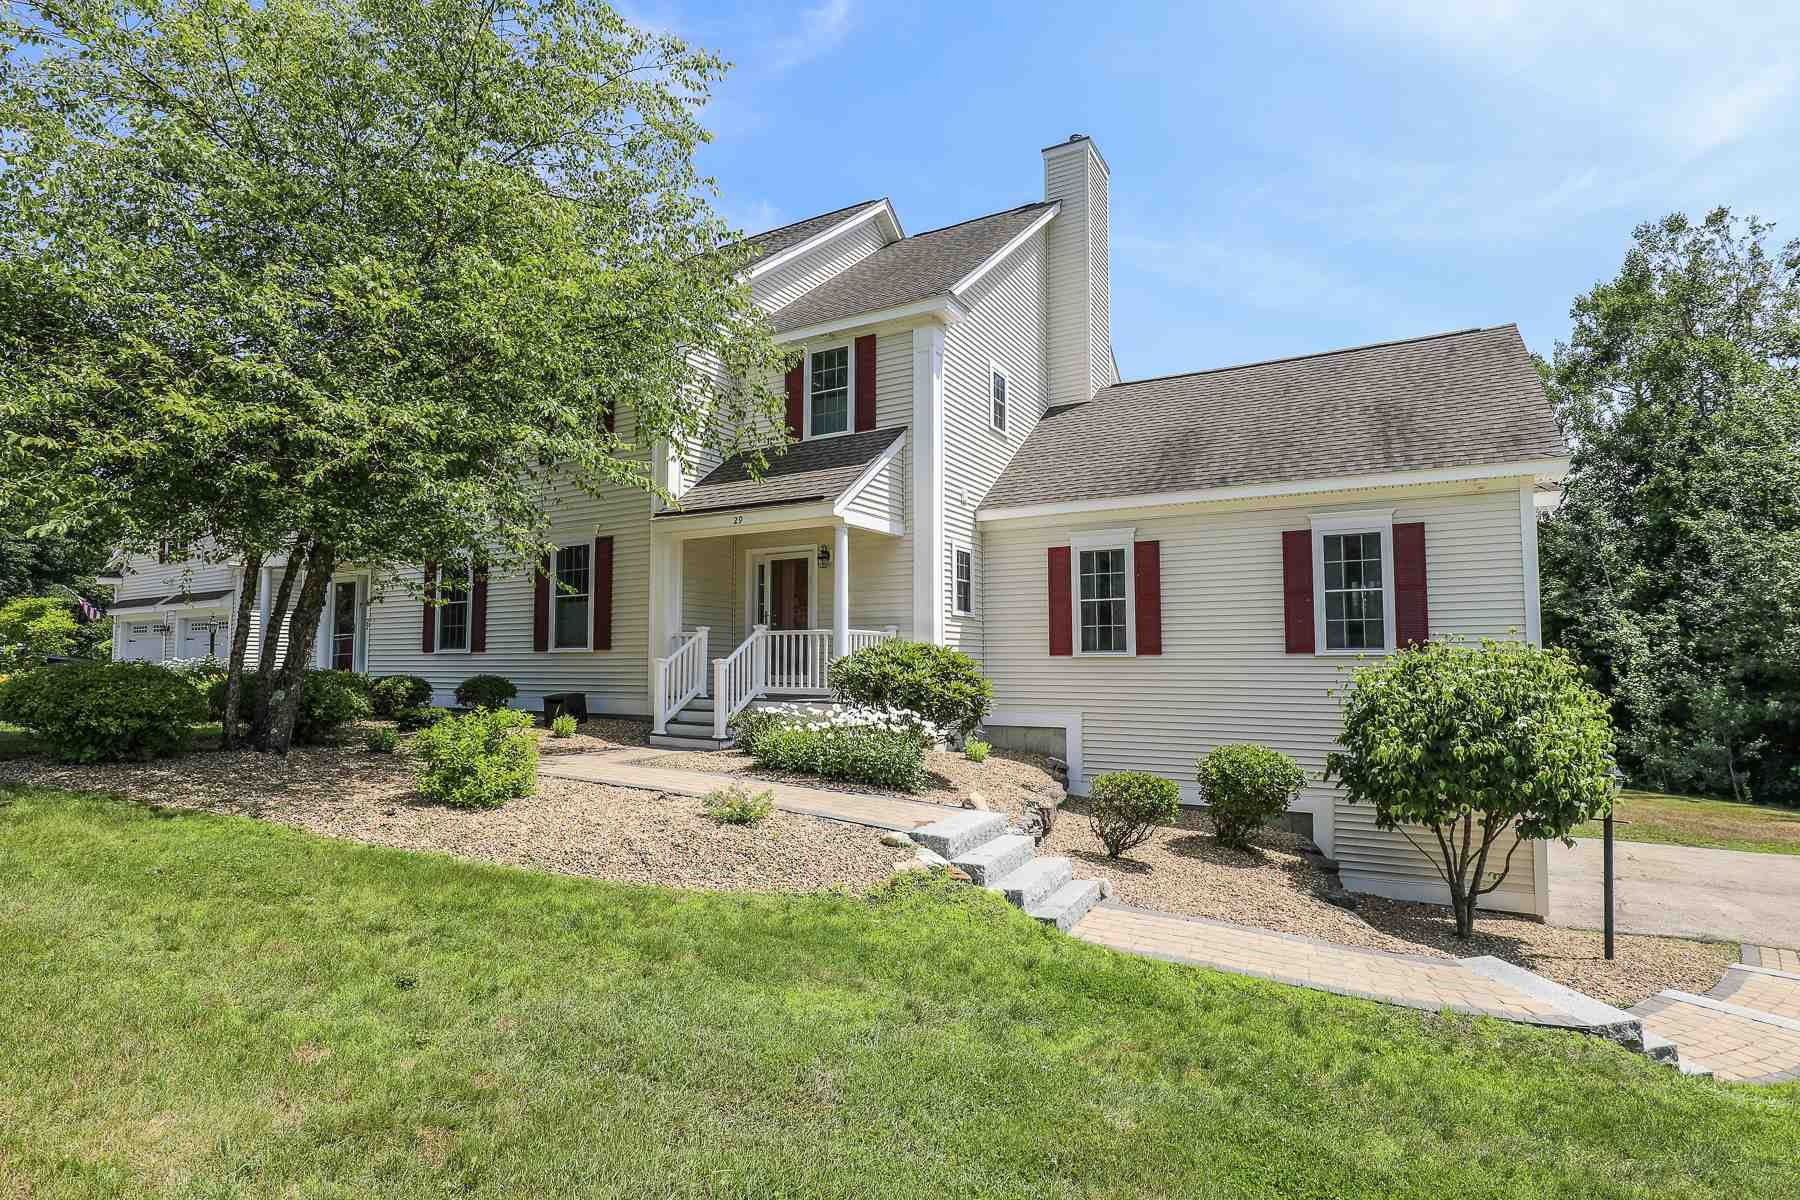 29 Southwoods Road, Chester, NH 03036 - #: 4815578